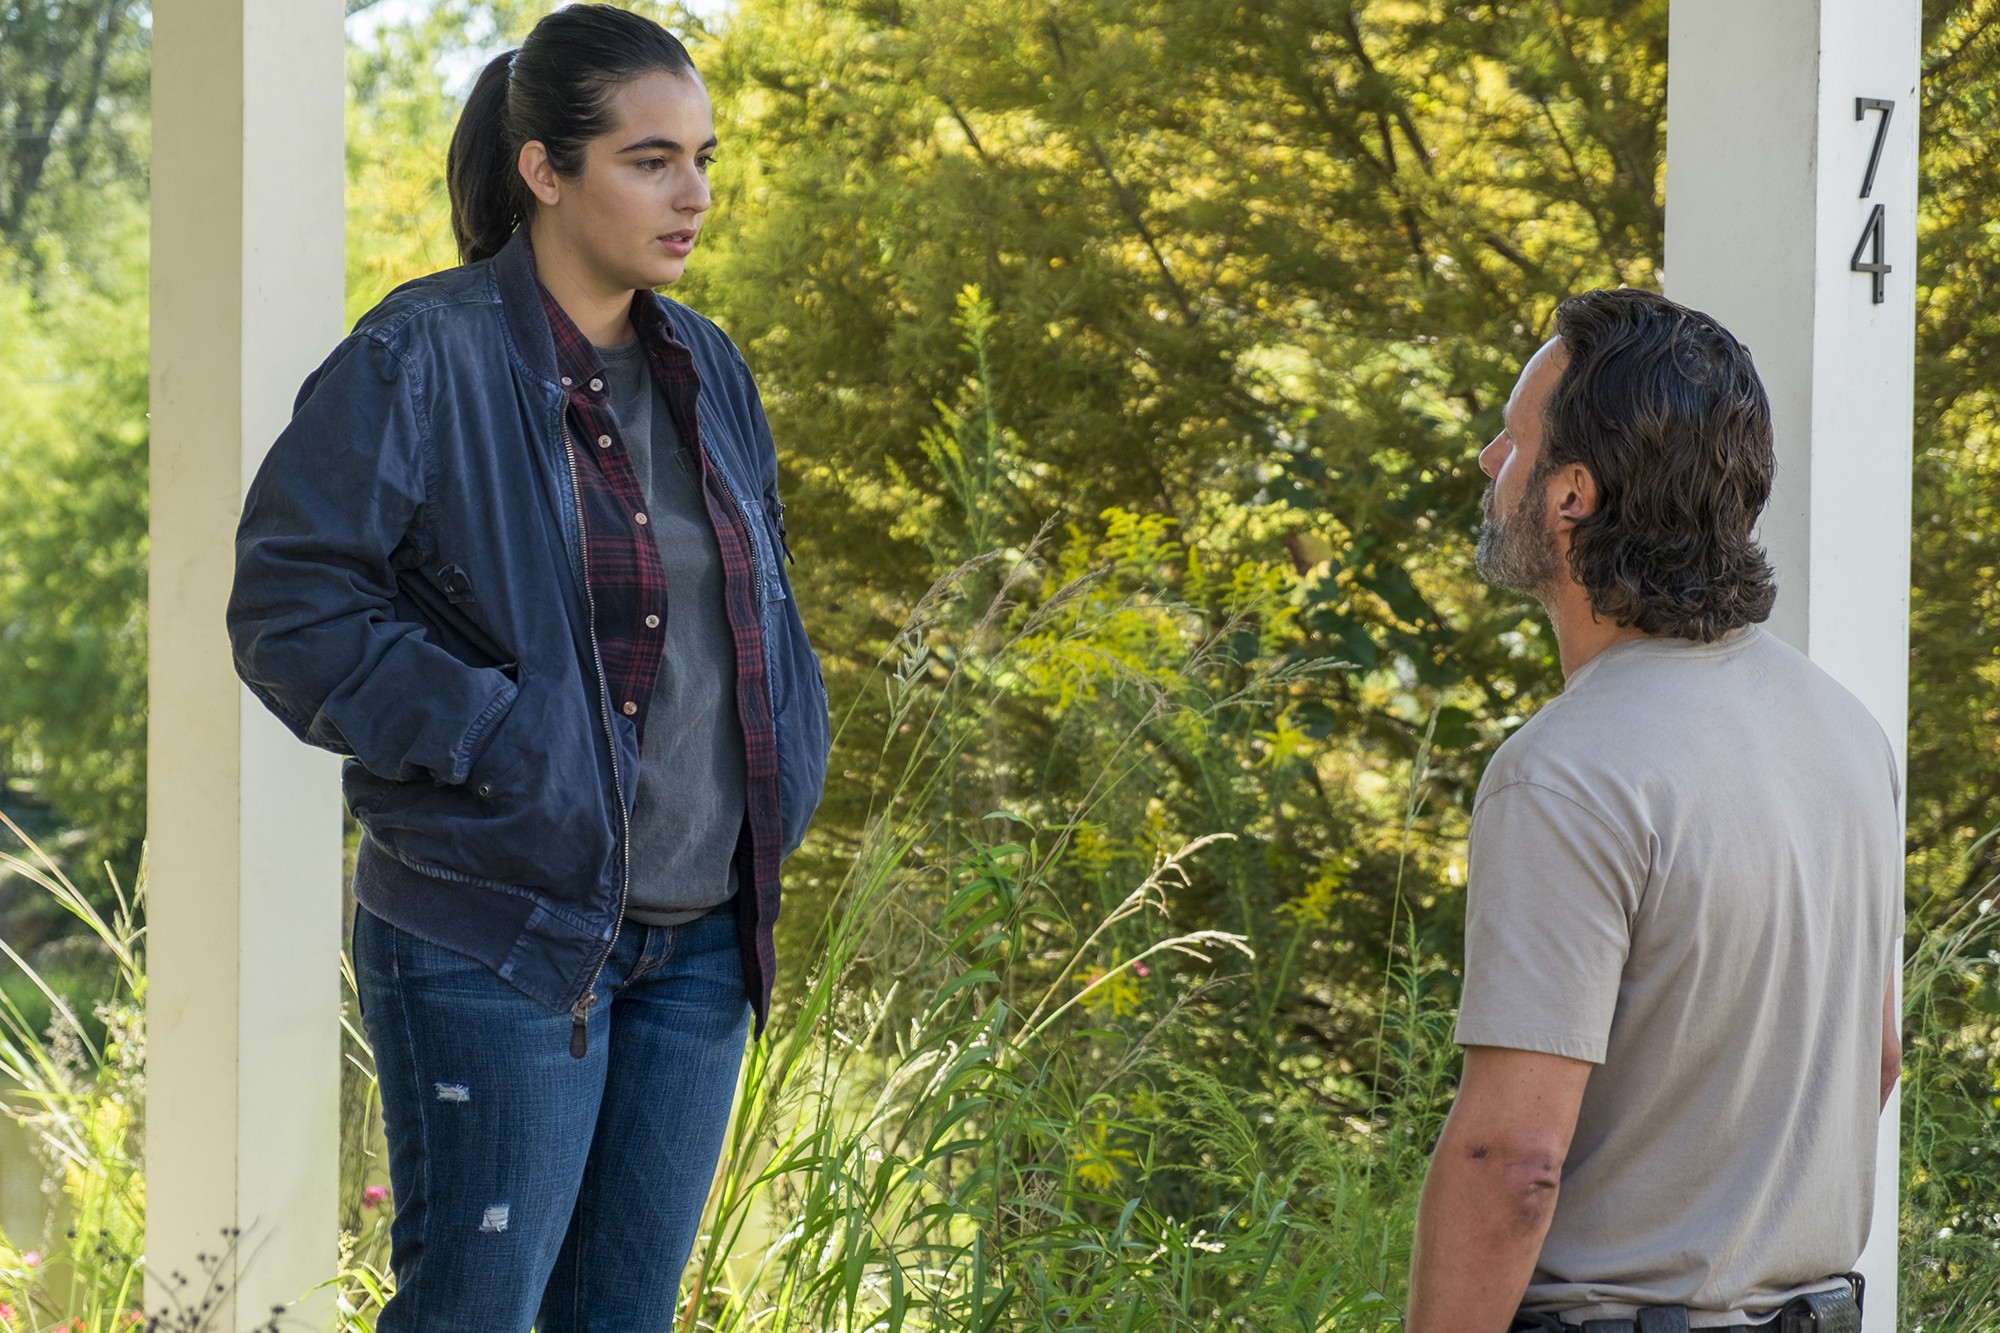 Alanna Masterson as Tara Chambler, Andrew Lincoln as Rick Grimes; - The Walking Dead, Season 7, Episode 12